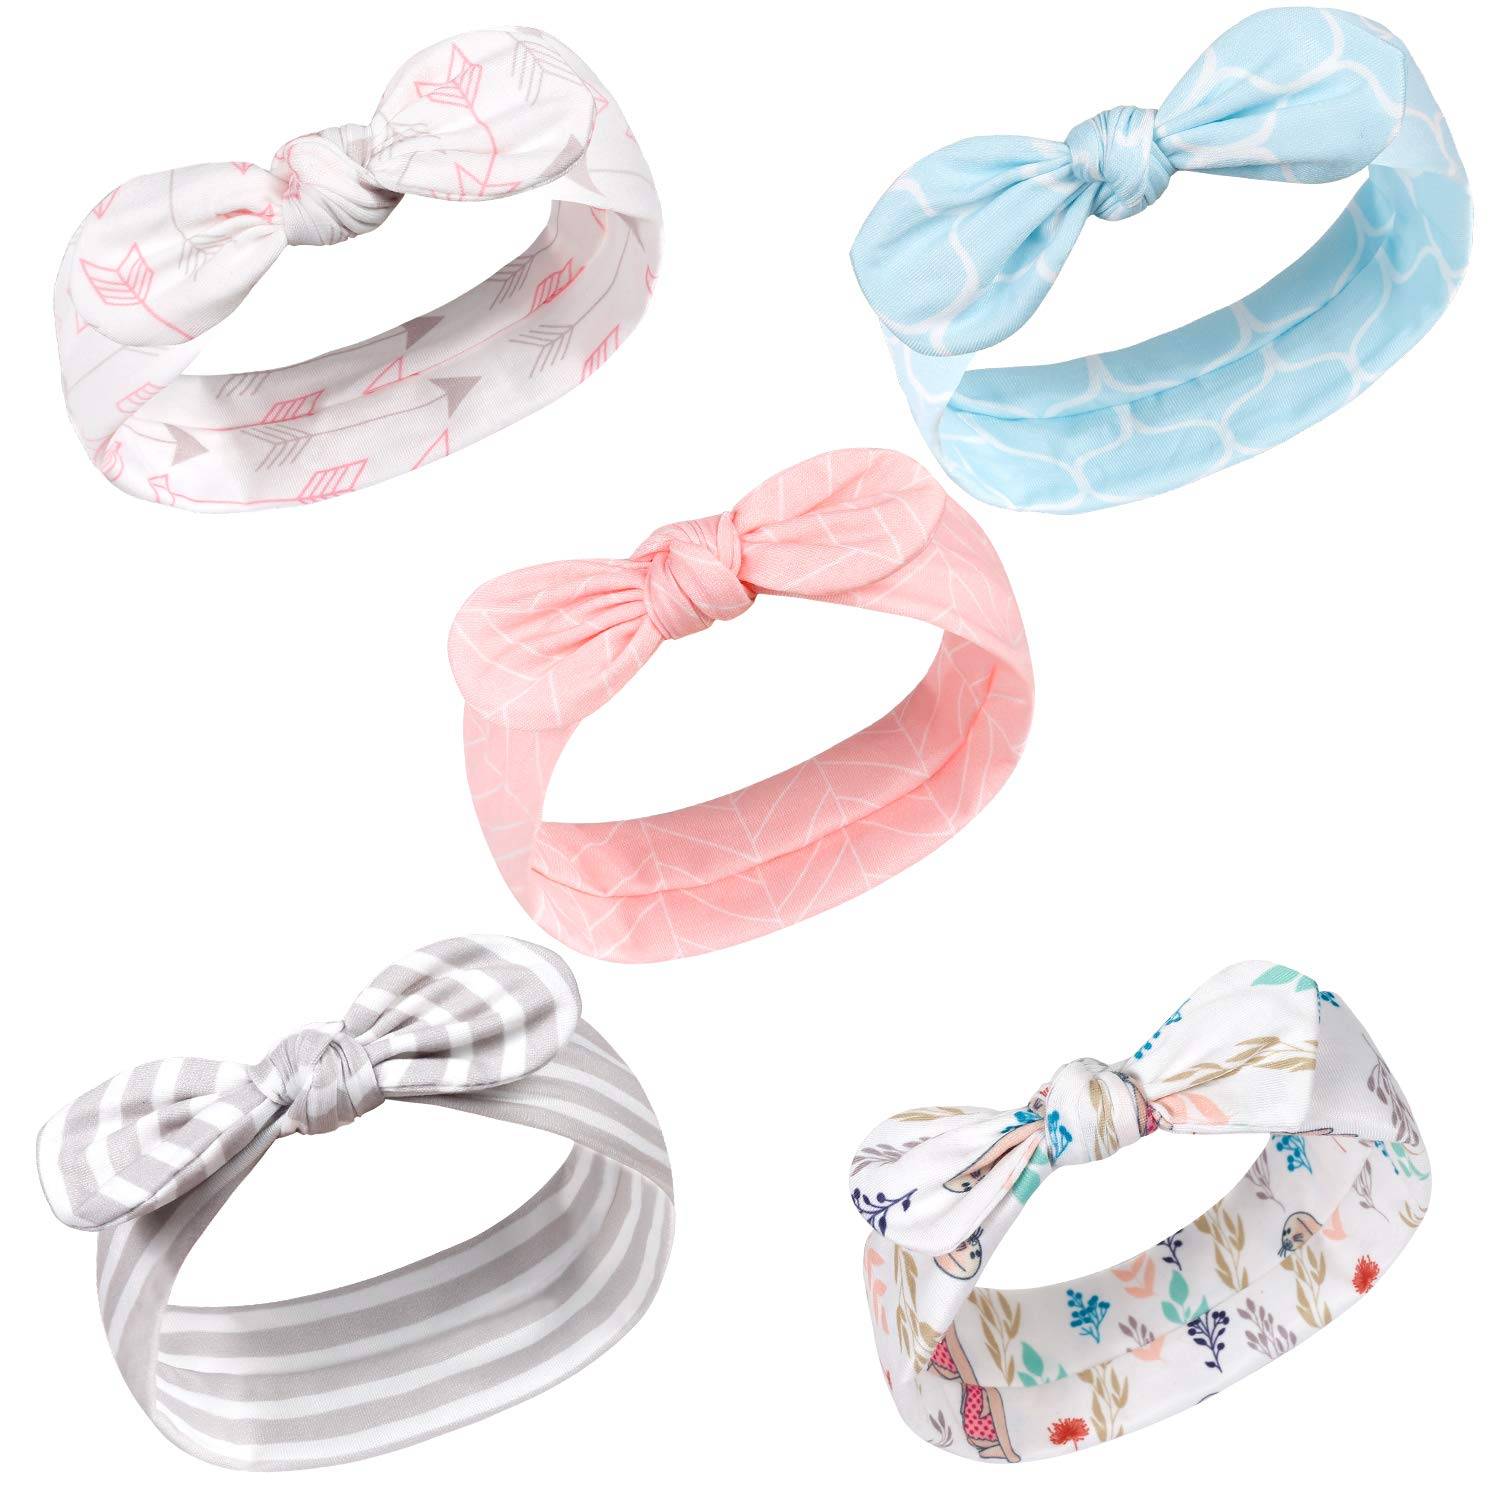 Manual Toddler Girls Headbands Elastic Hair Bow Nylon Hairbands Soft Stretchy Hair Accessories for Baby Girl Infant Kids Teens